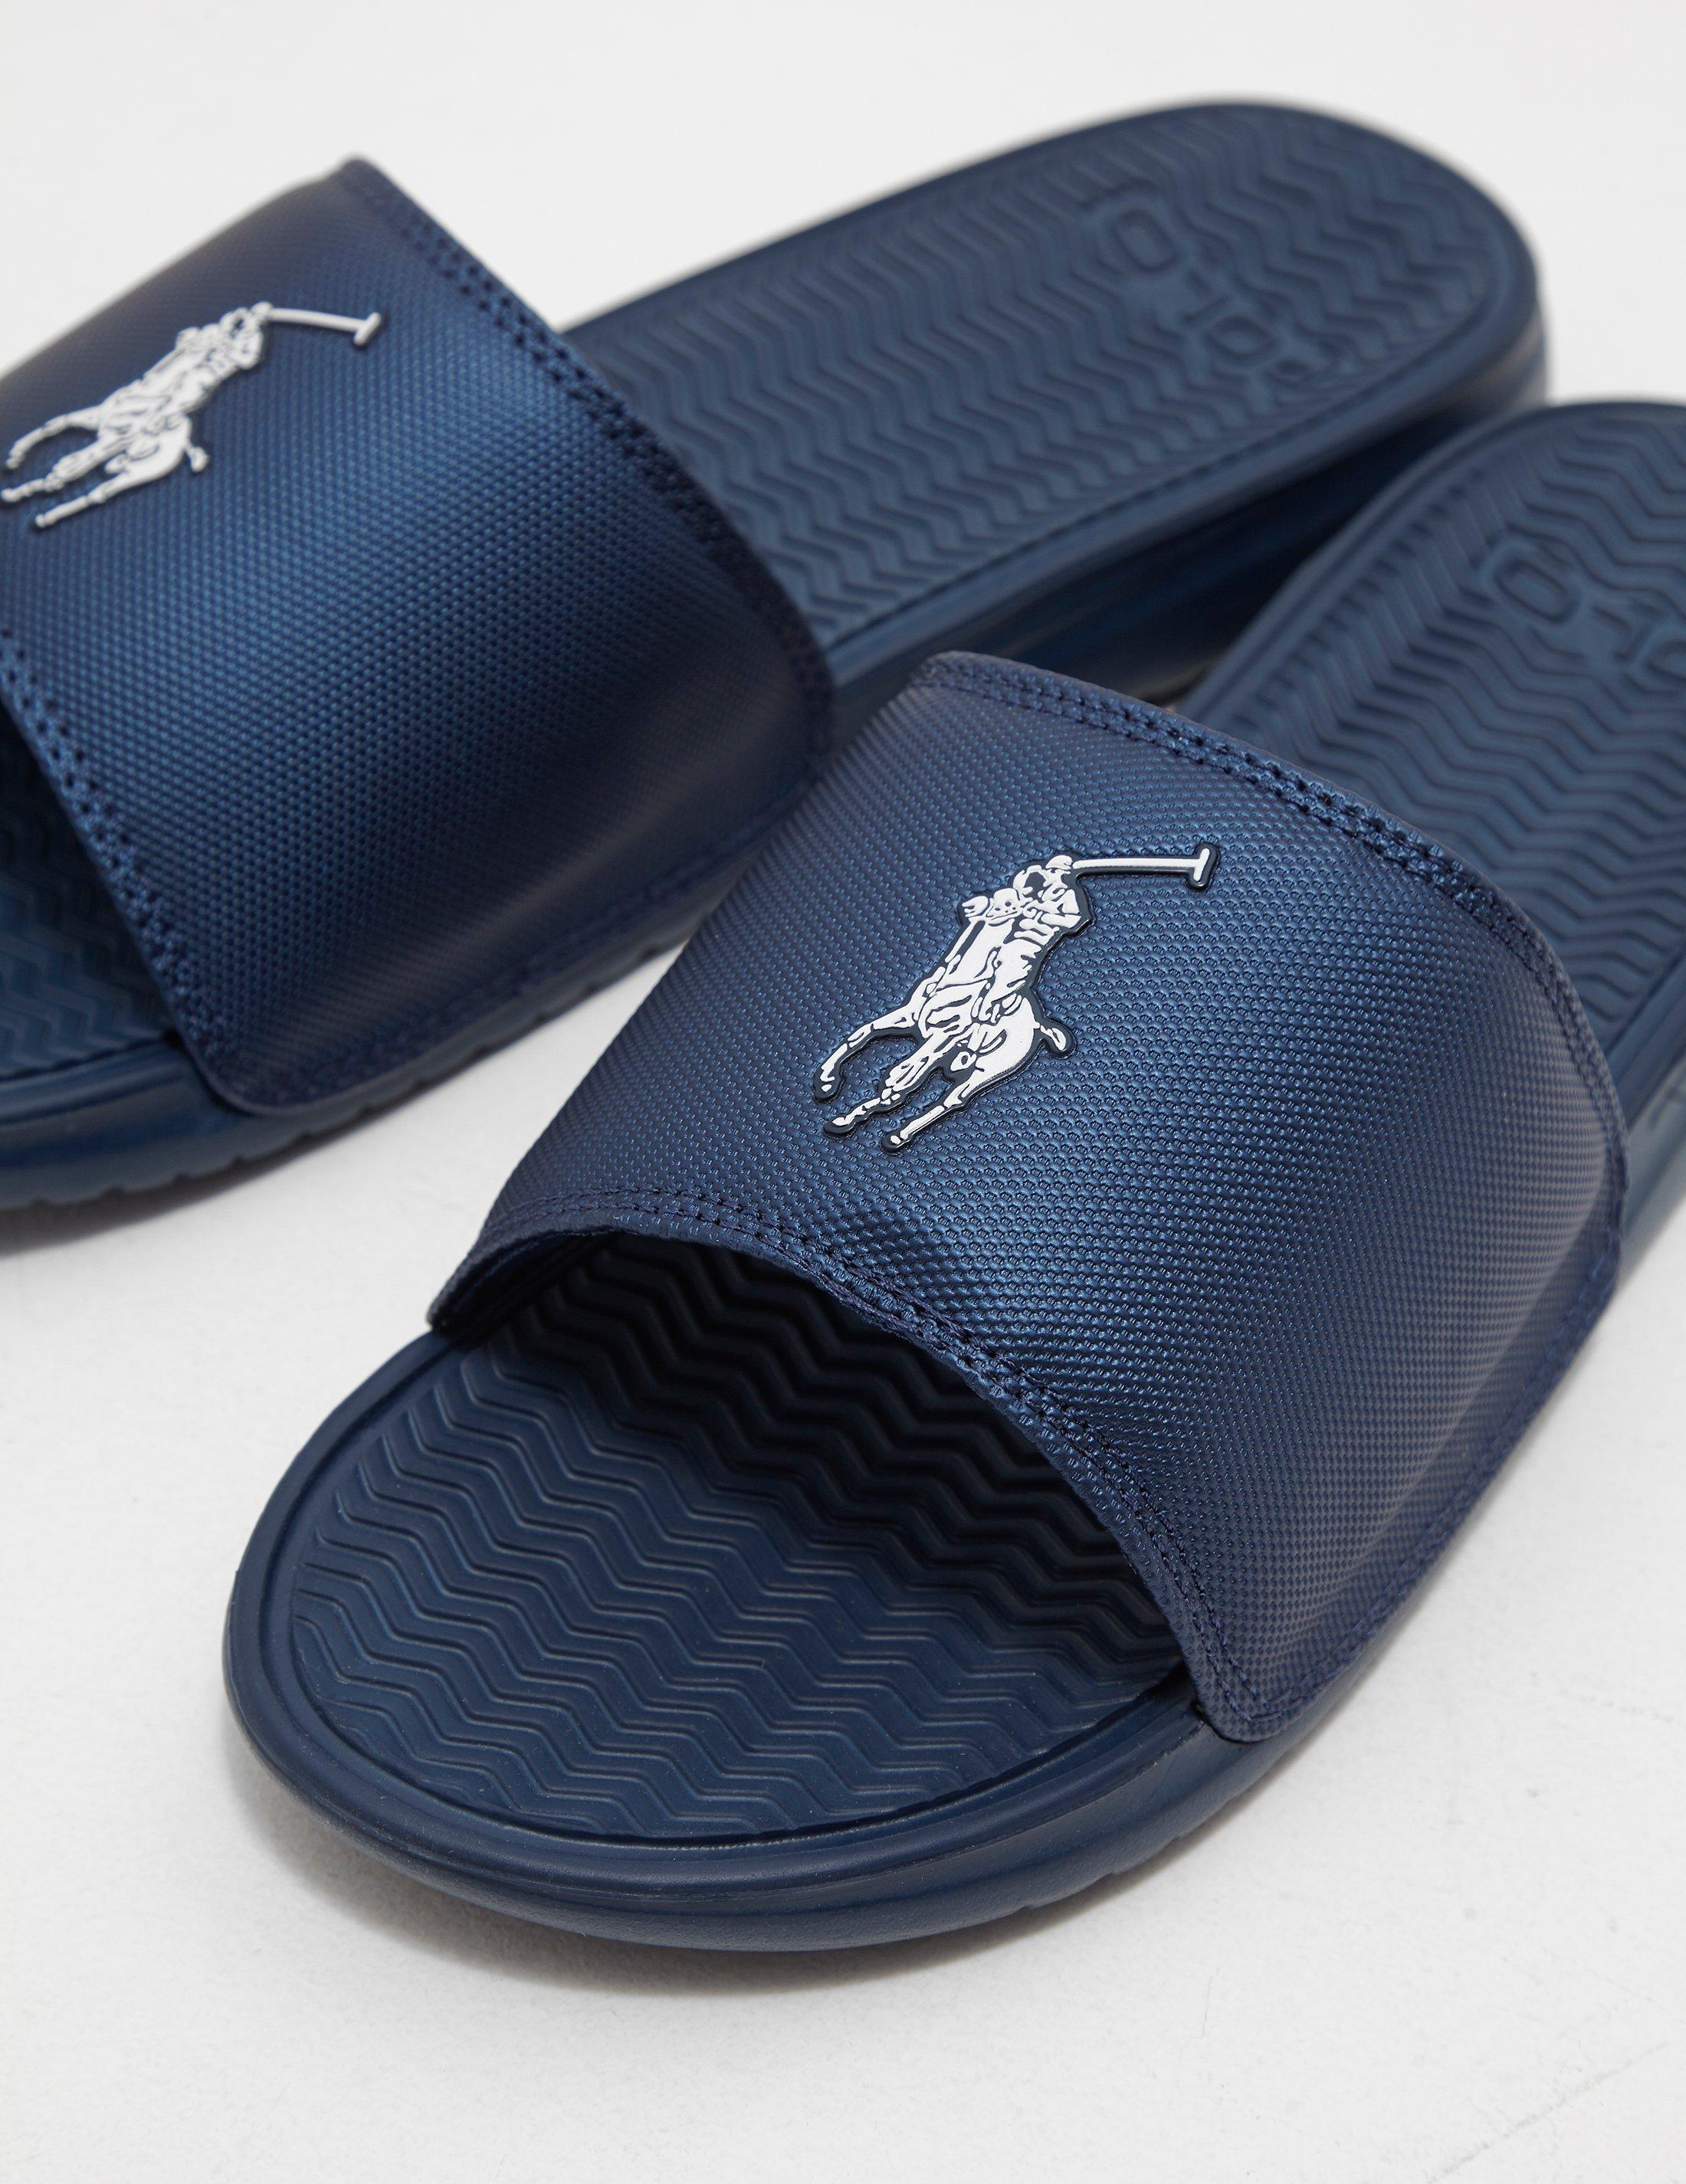 3f11378f400a Polo Ralph Lauren Rodwell Sliders in Blue for Men - Save 32% - Lyst